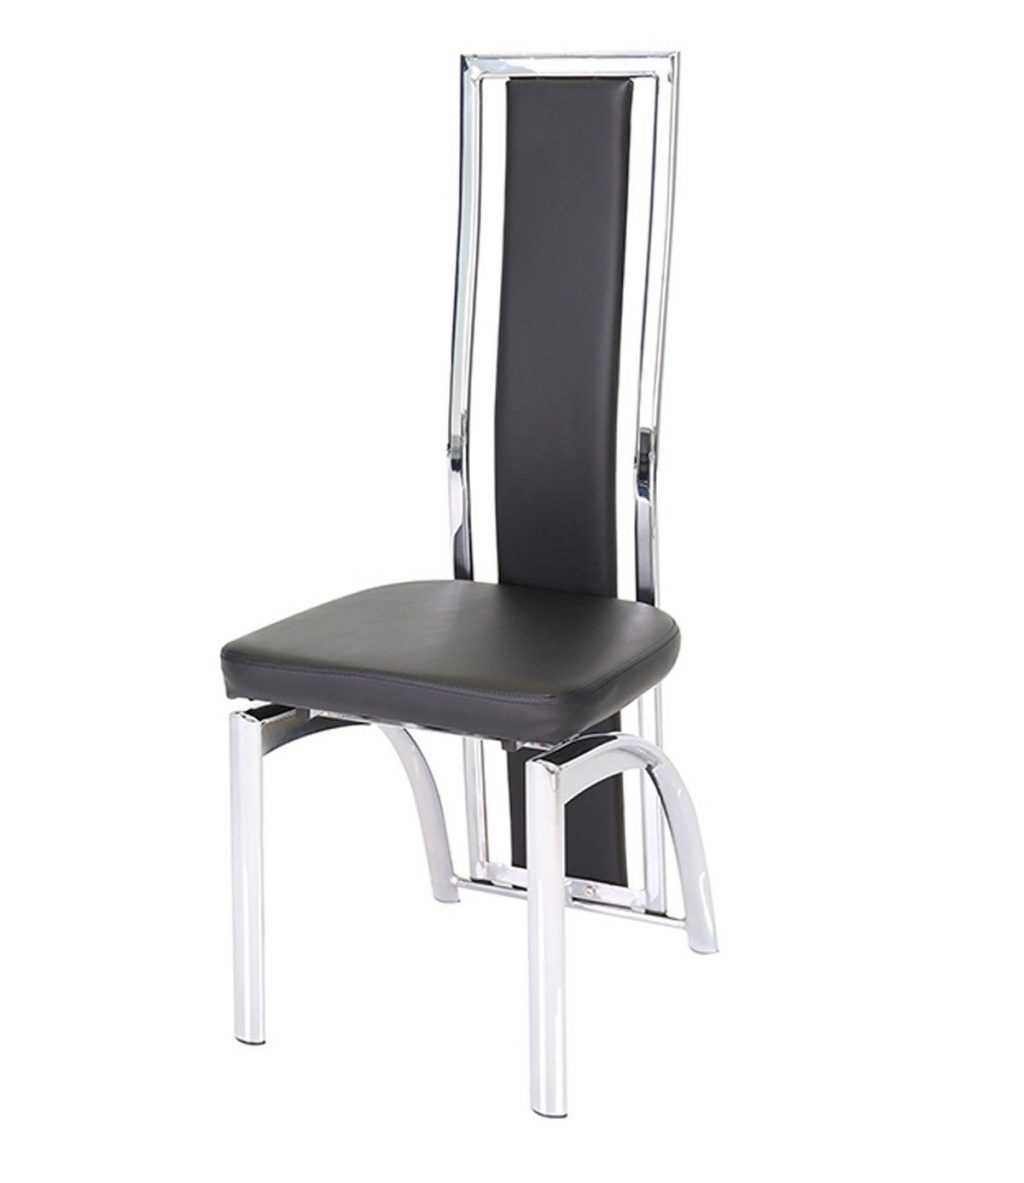 Mayfair High Back Faux Leather And Chrome Black Dining Chair Mayfair